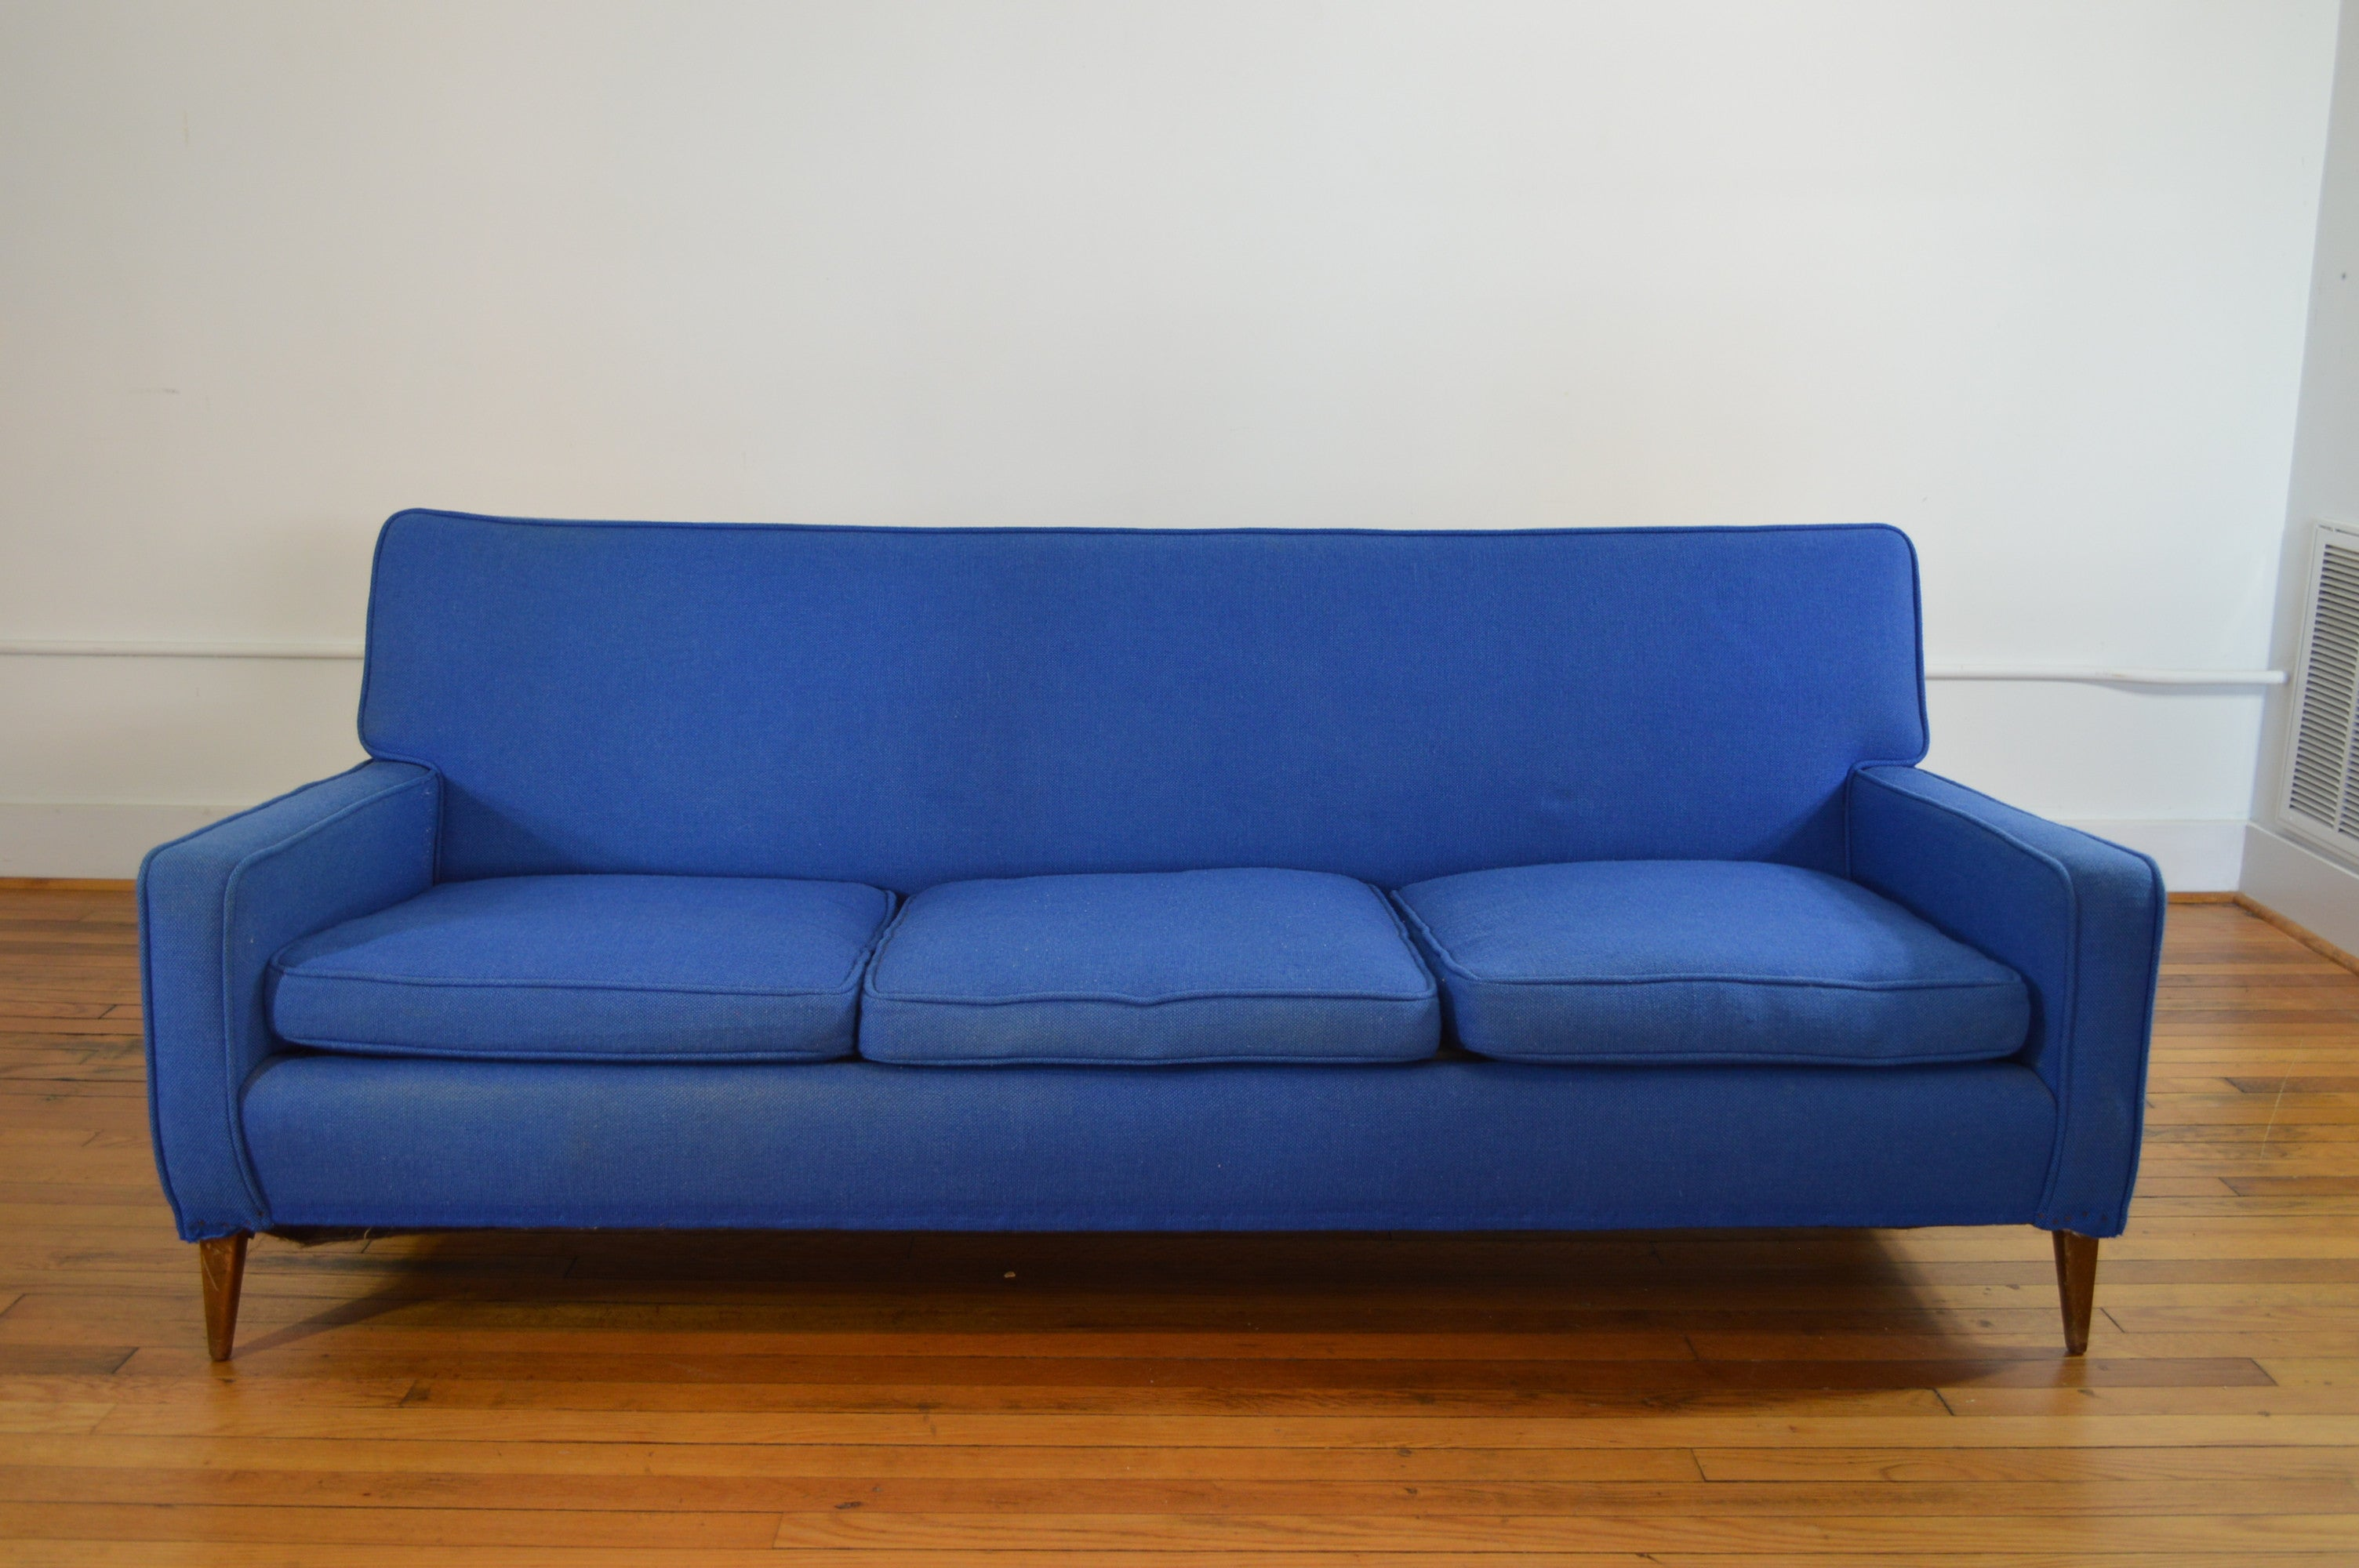 Paul McCobb for Directional Mid Century Modern Sofa GalaxieModern